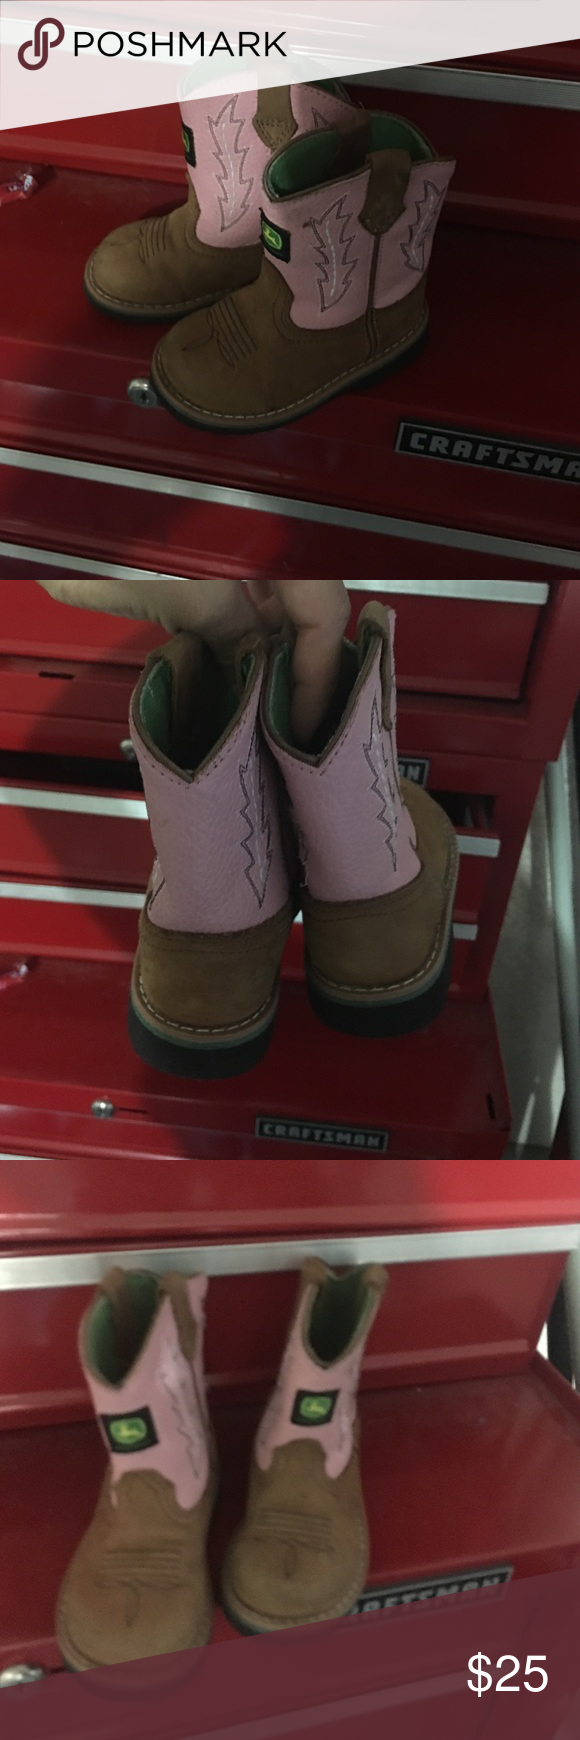 toddler cowboy boots d pink and deere